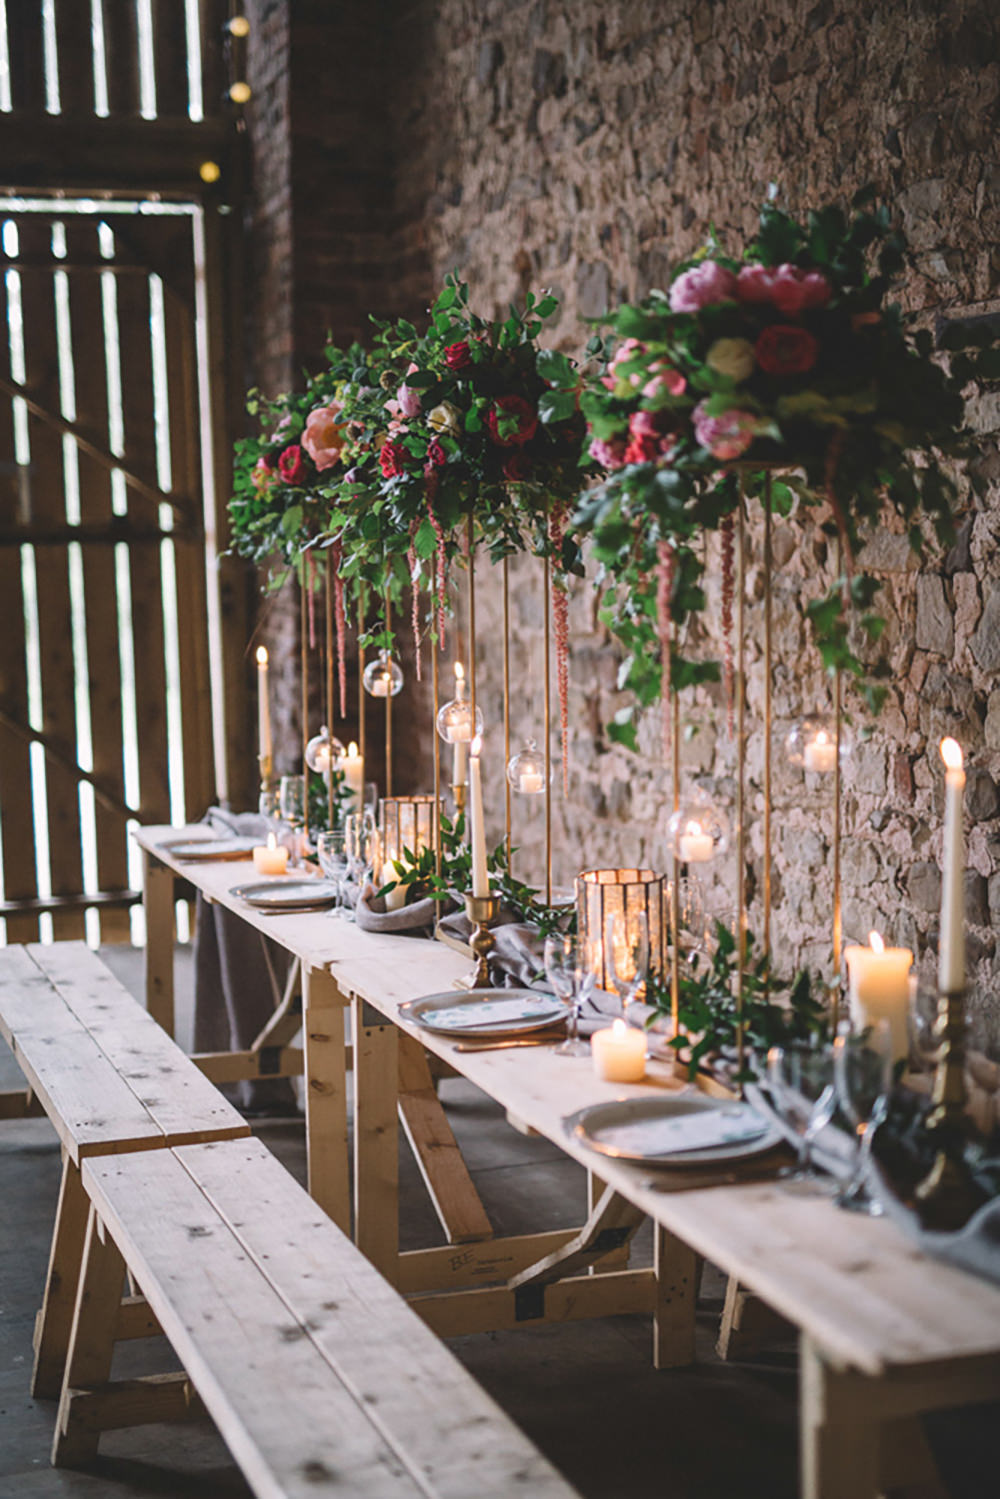 Table Tablescape Flowers Tall High Suspended Hanging Gold Greenery Foliage Coral Peony Peonies Candles Runner Long Free Spirited Wedding Ideas Woodland Lumiere Photographic